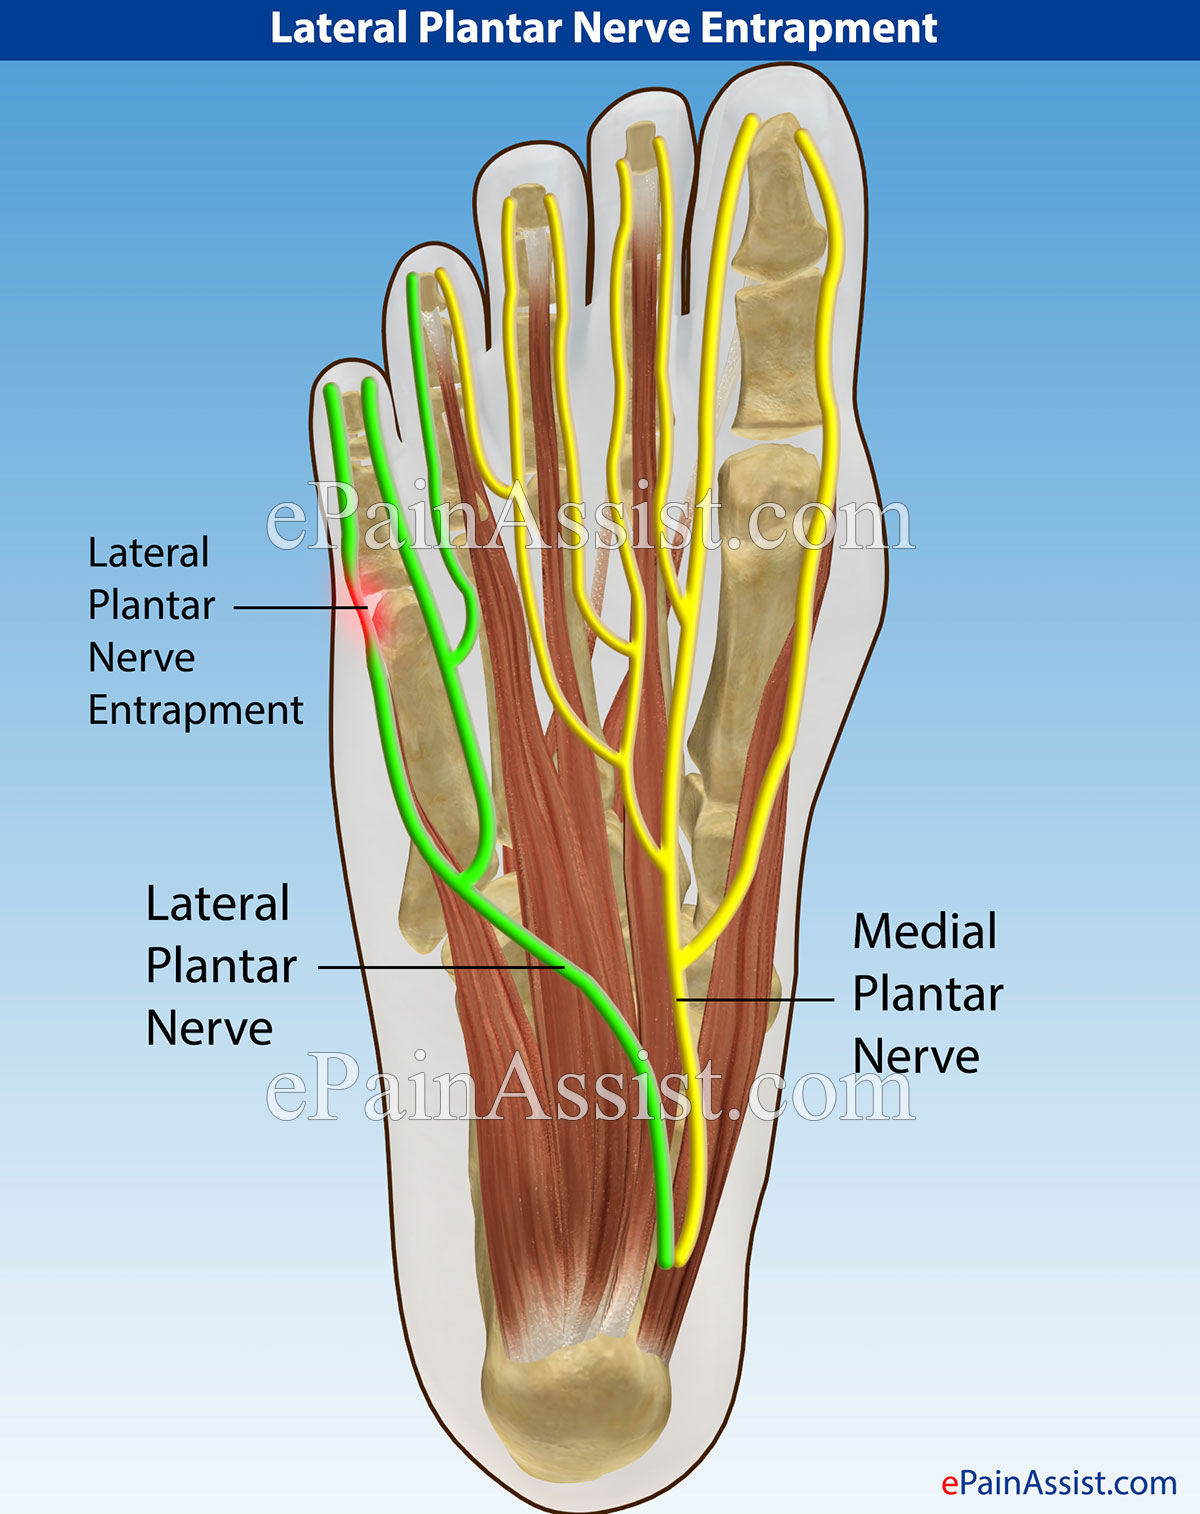 Lateral Plantar Nerve Entrapment